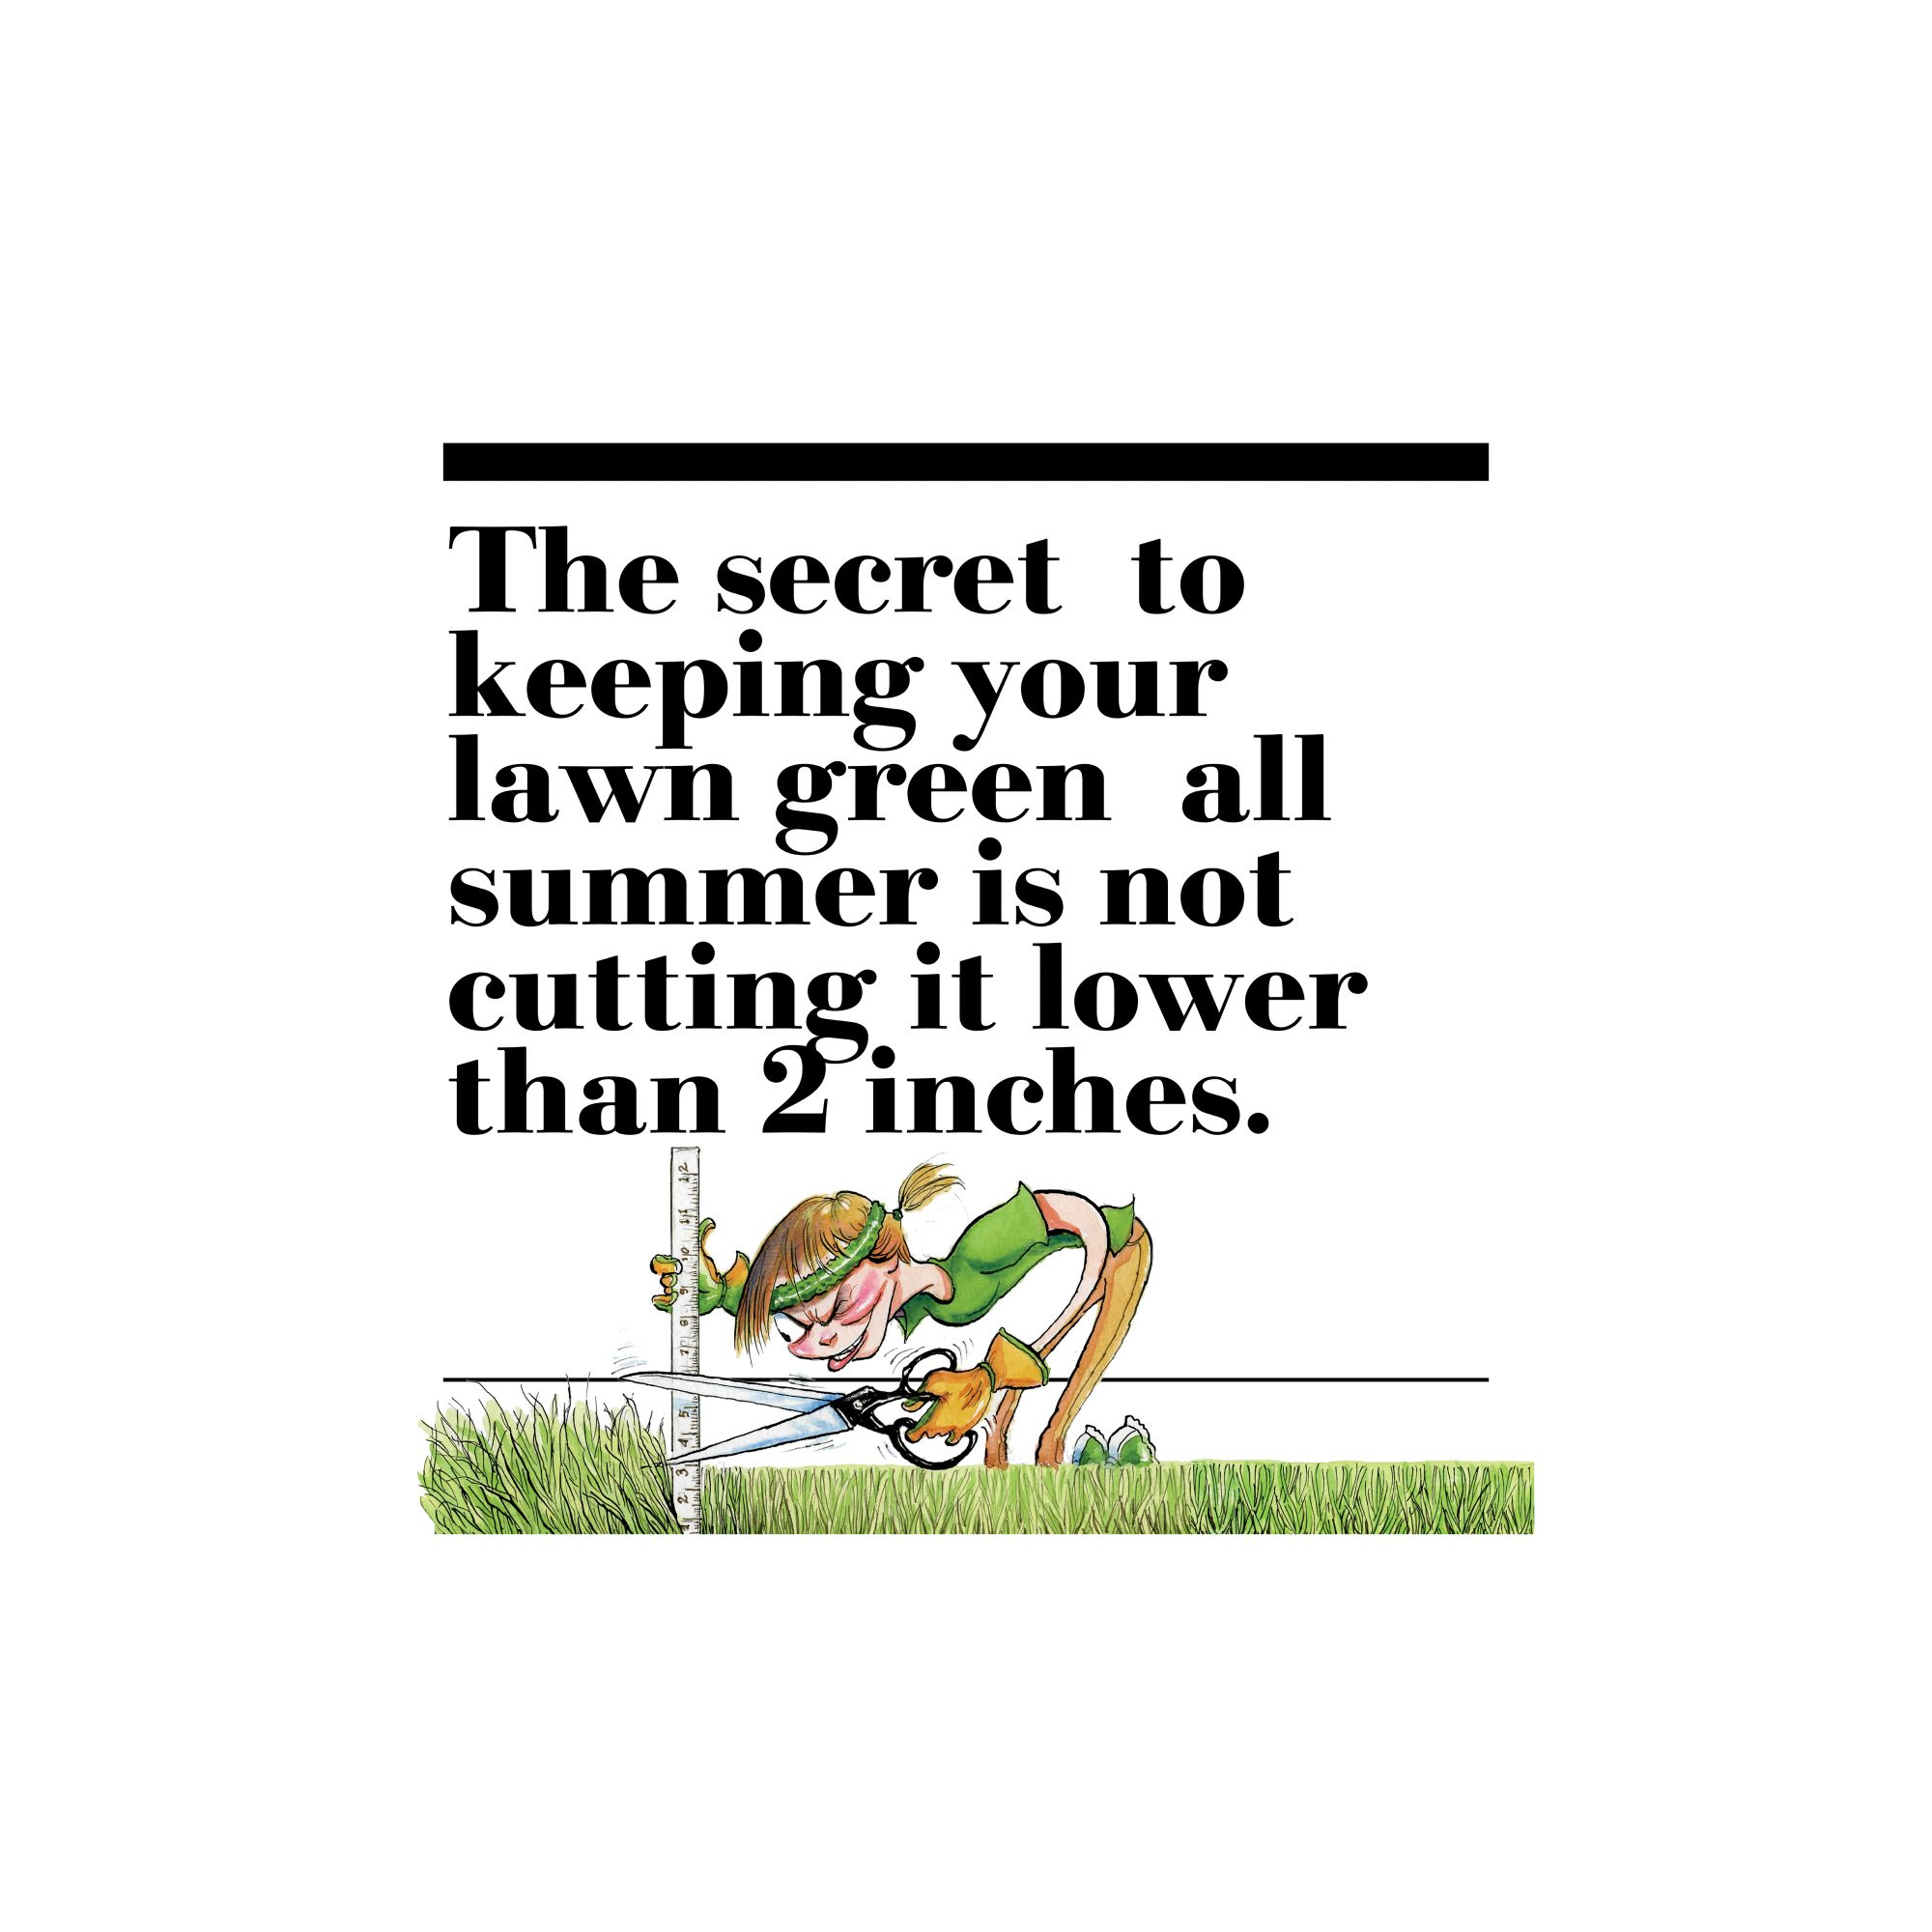 21. The secret to keeping your lawn green all summer is not cutting it lower than 2 inches.